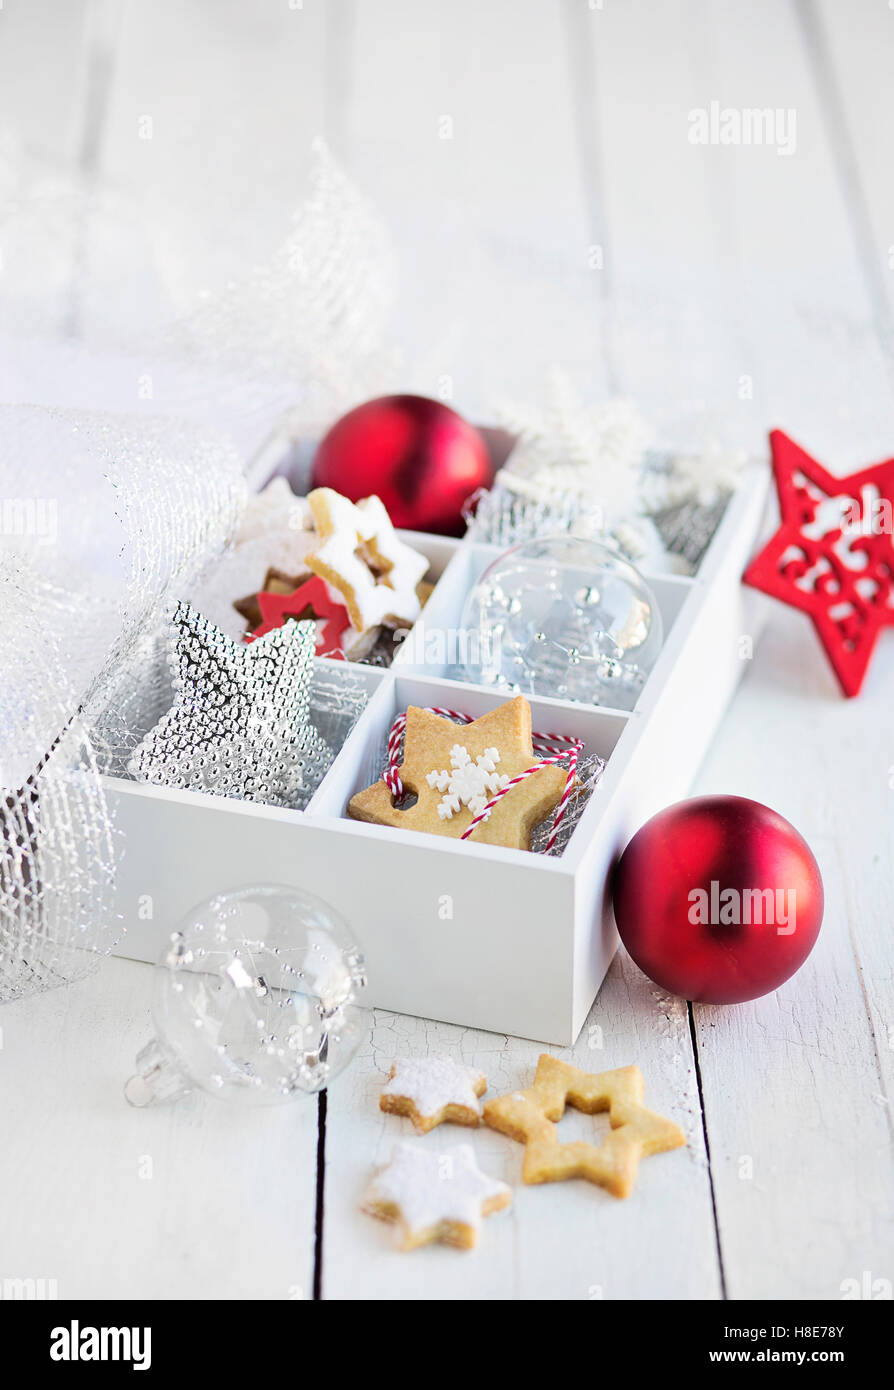 Box with christmas biscuits and decorations on white table - Stock Image